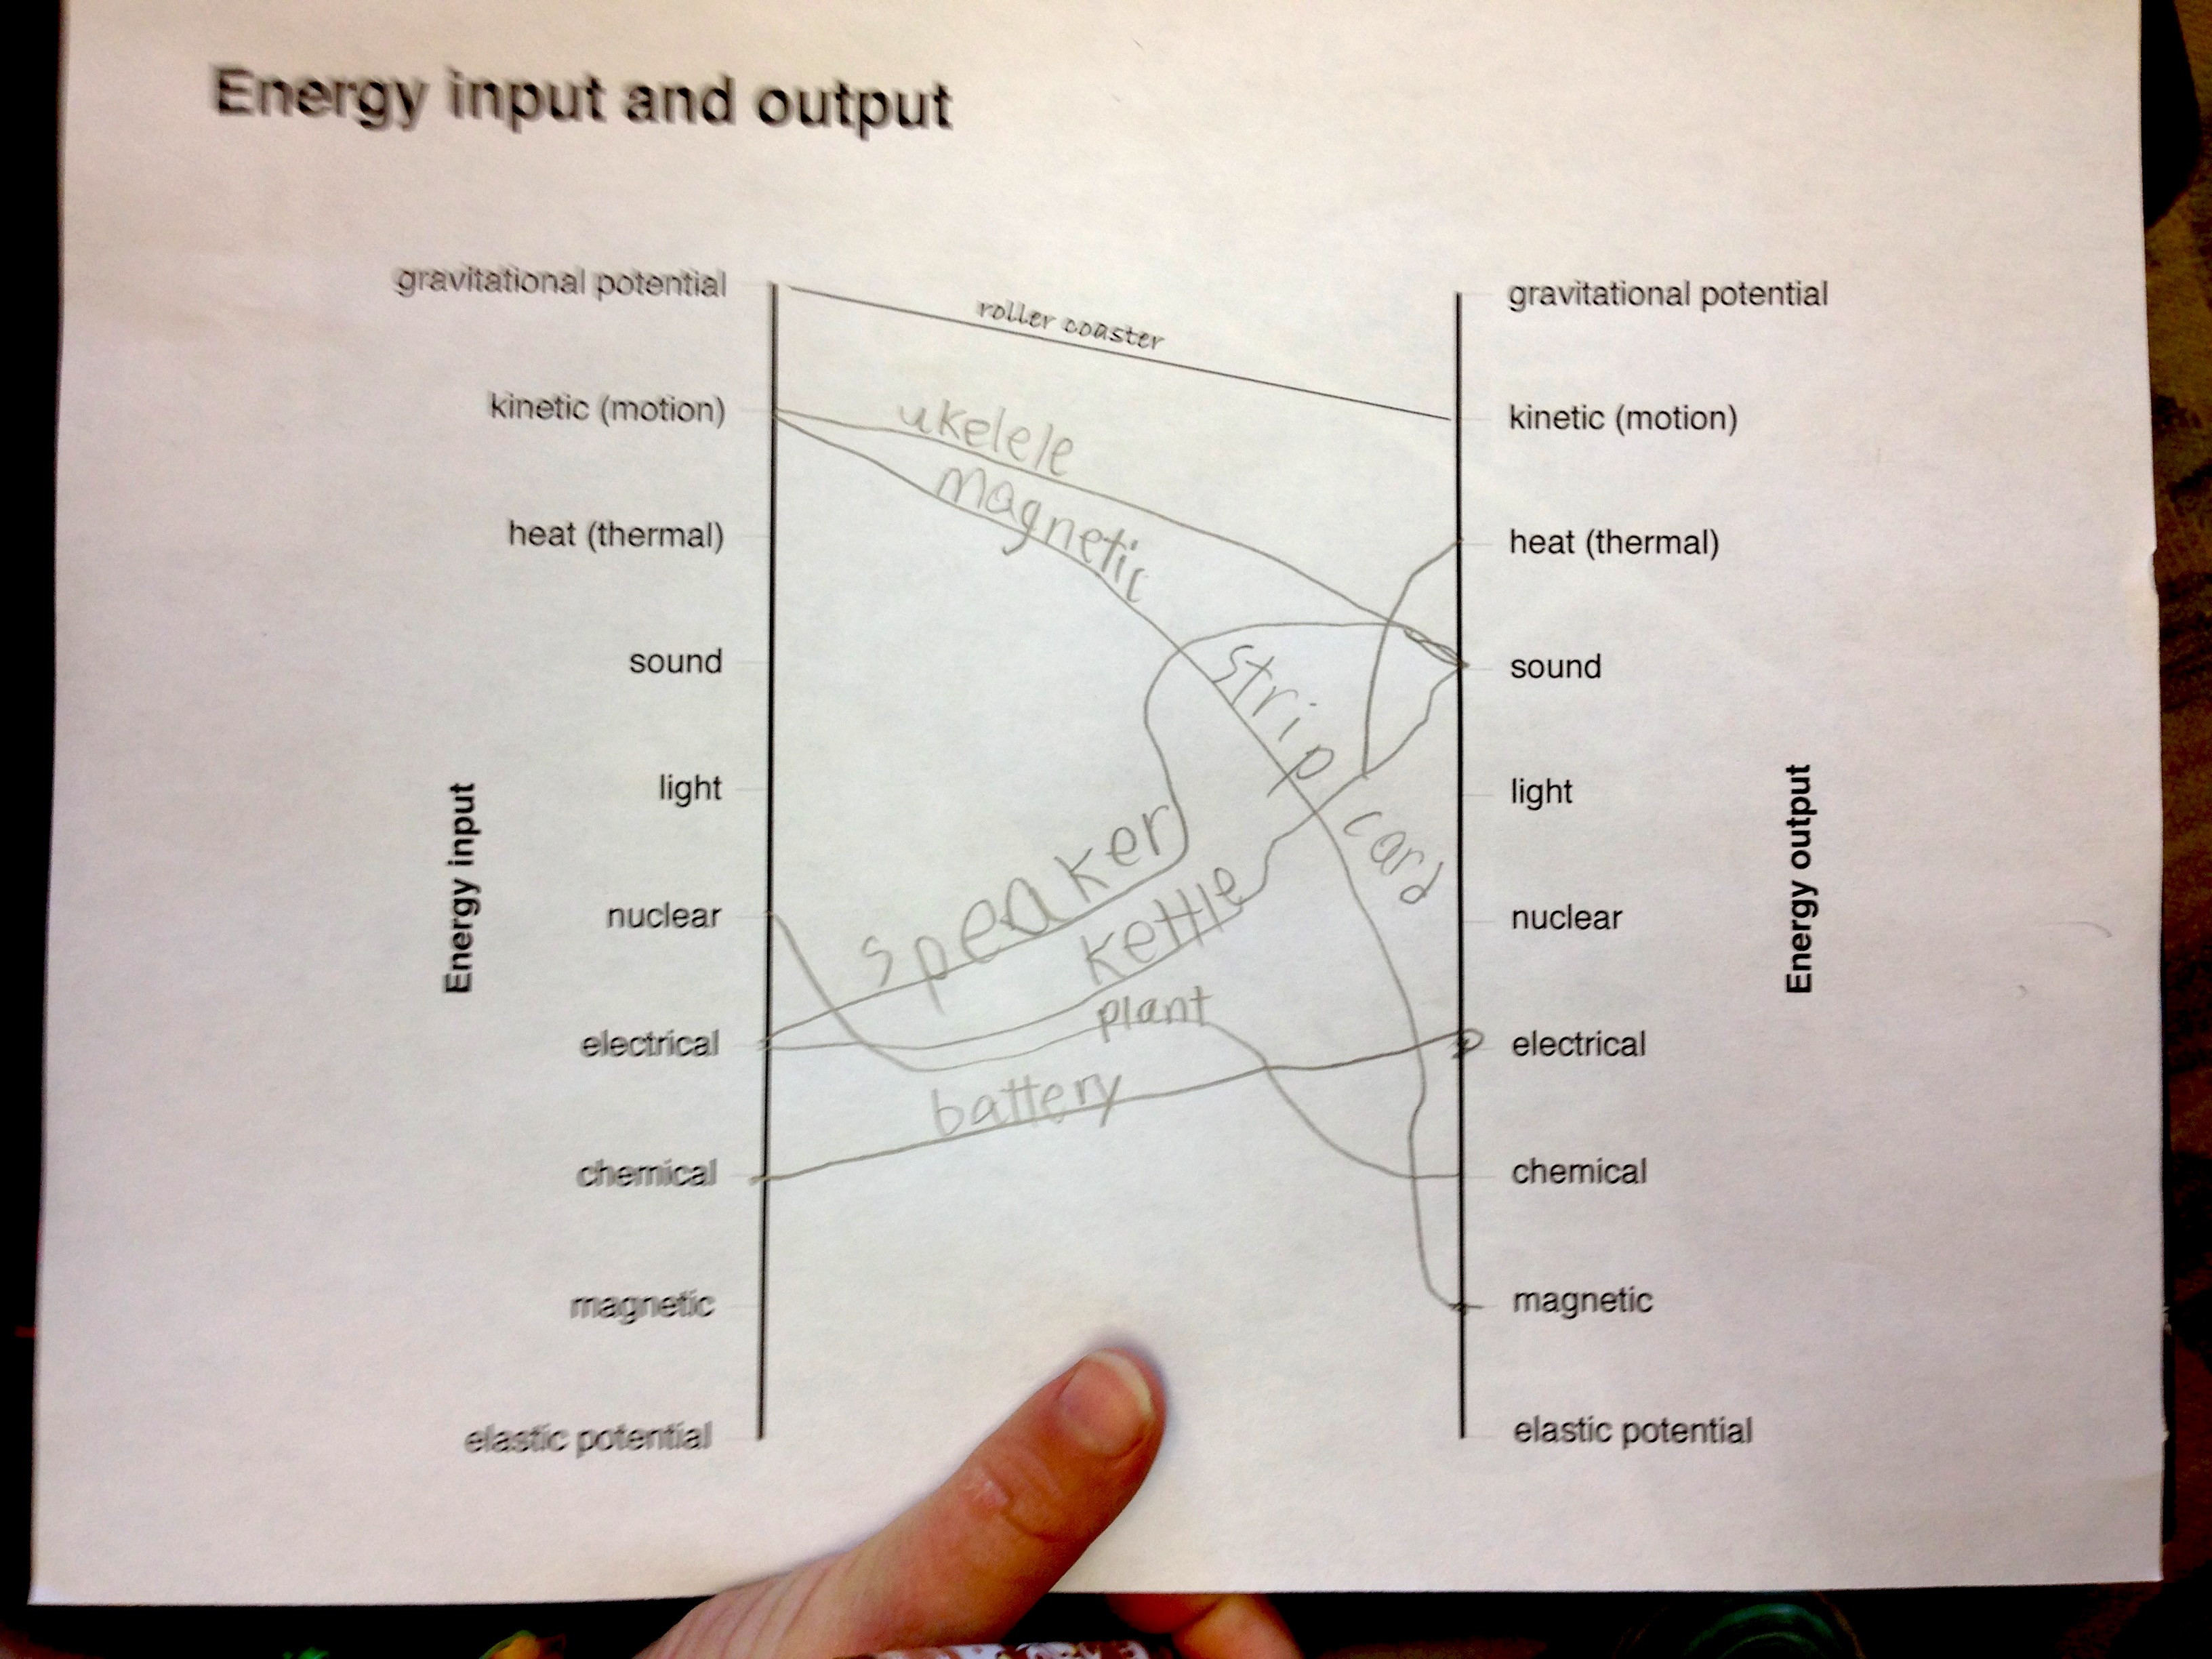 Energy Input And Output In Devices